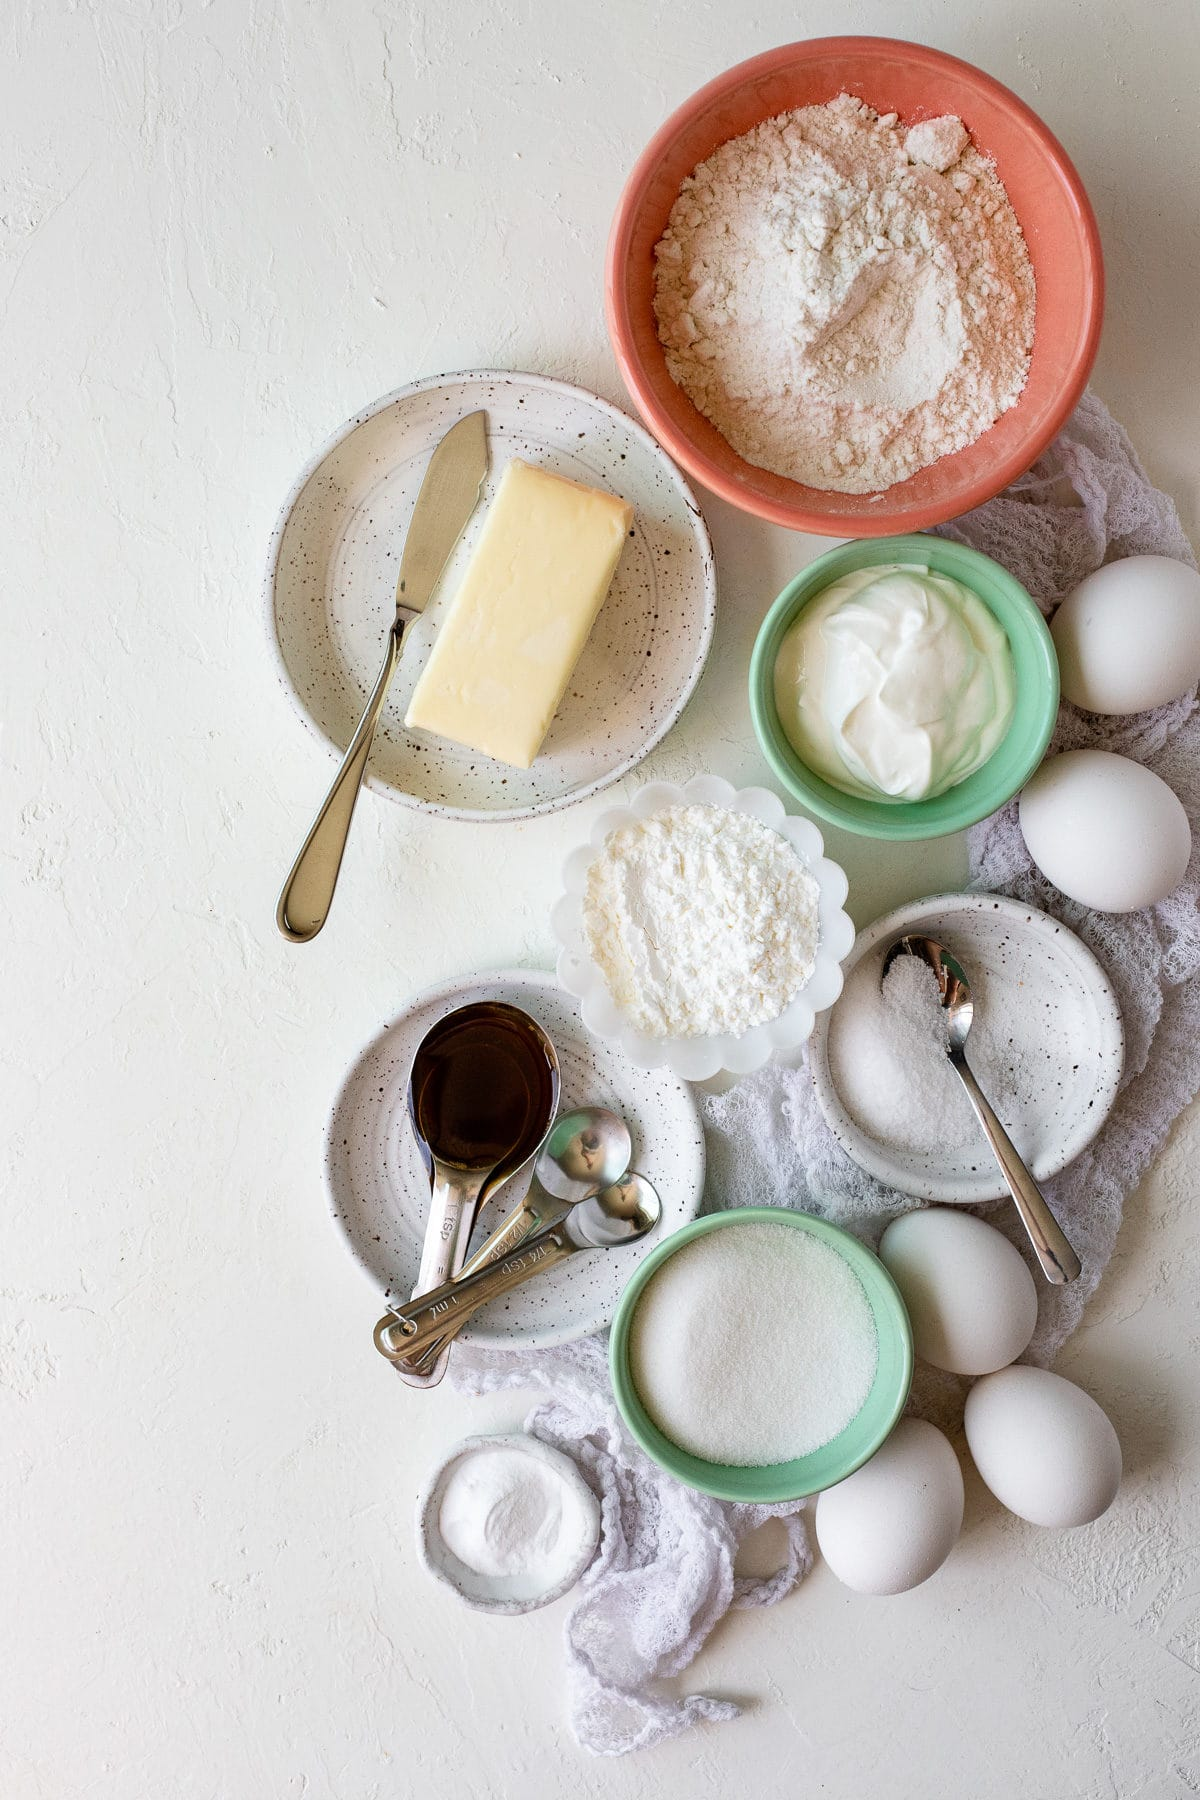 Overhead view of ingredients needed to make a sour cream pound cake.